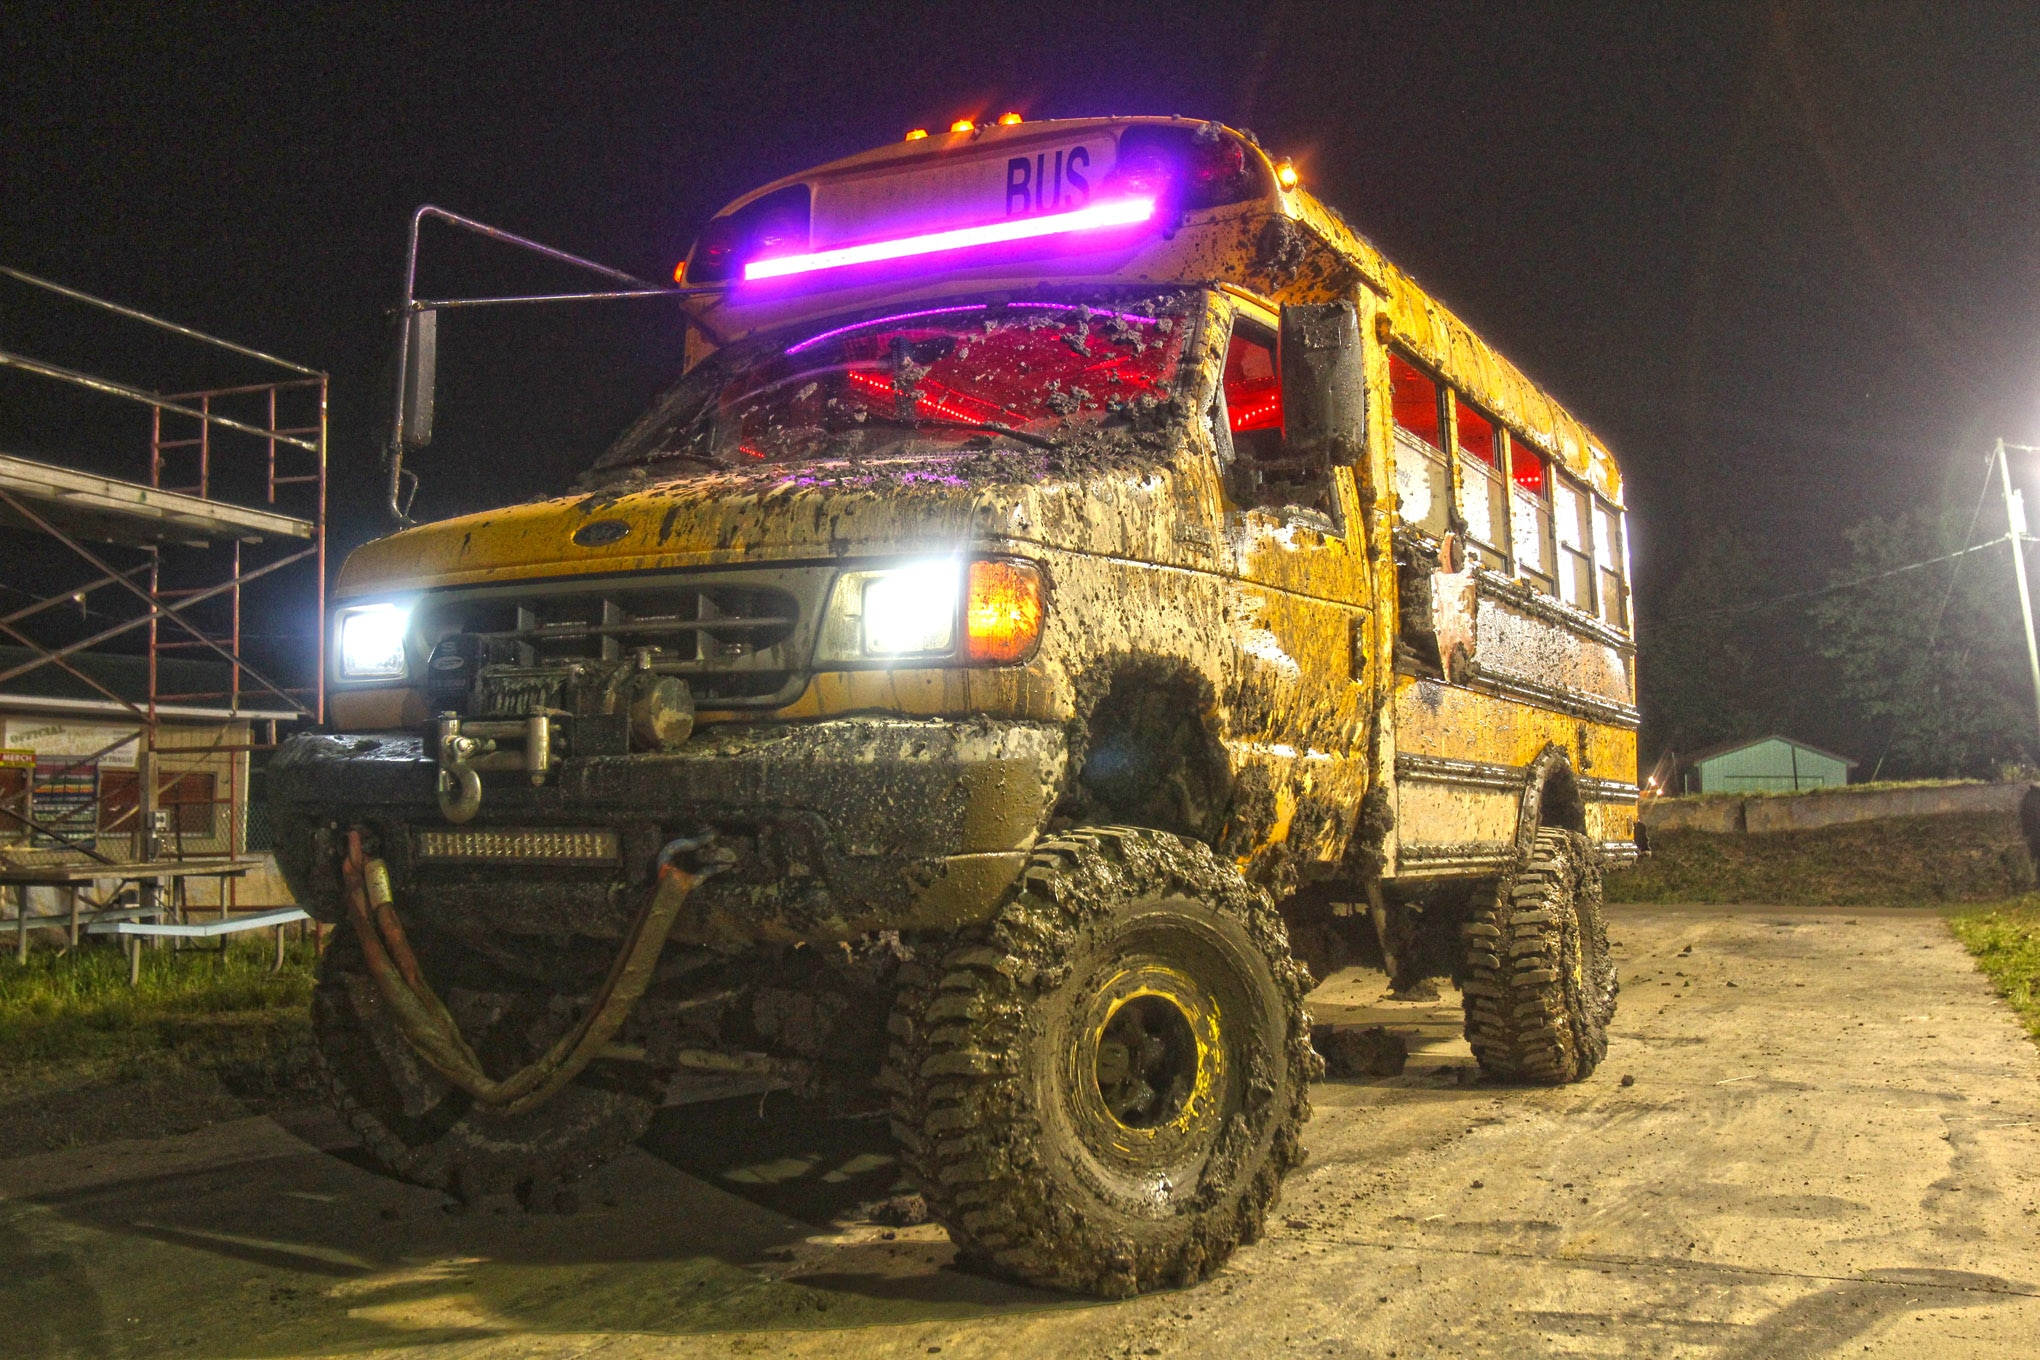 What initially looked like a short bus stuck in the mud was actually hiding much more underneath the bench seats and yellow paint. First off, it wasn't stuck—the 7.3L Powerstroke diesel kept the 39.5-inch Boggers turning and hungry for mud, and the 13,500-pound Superwinch remained untouched. The bus began life as a stock people-hauler, but with the addition of a Dana 50 in the front, a Sterling 10.5-inch axle in the rear, an 8-inch frame extension, the transmission from a '97 Ford F-250 Super Duty, and a transfer case from a '92 Bronco, it was ready to bog.